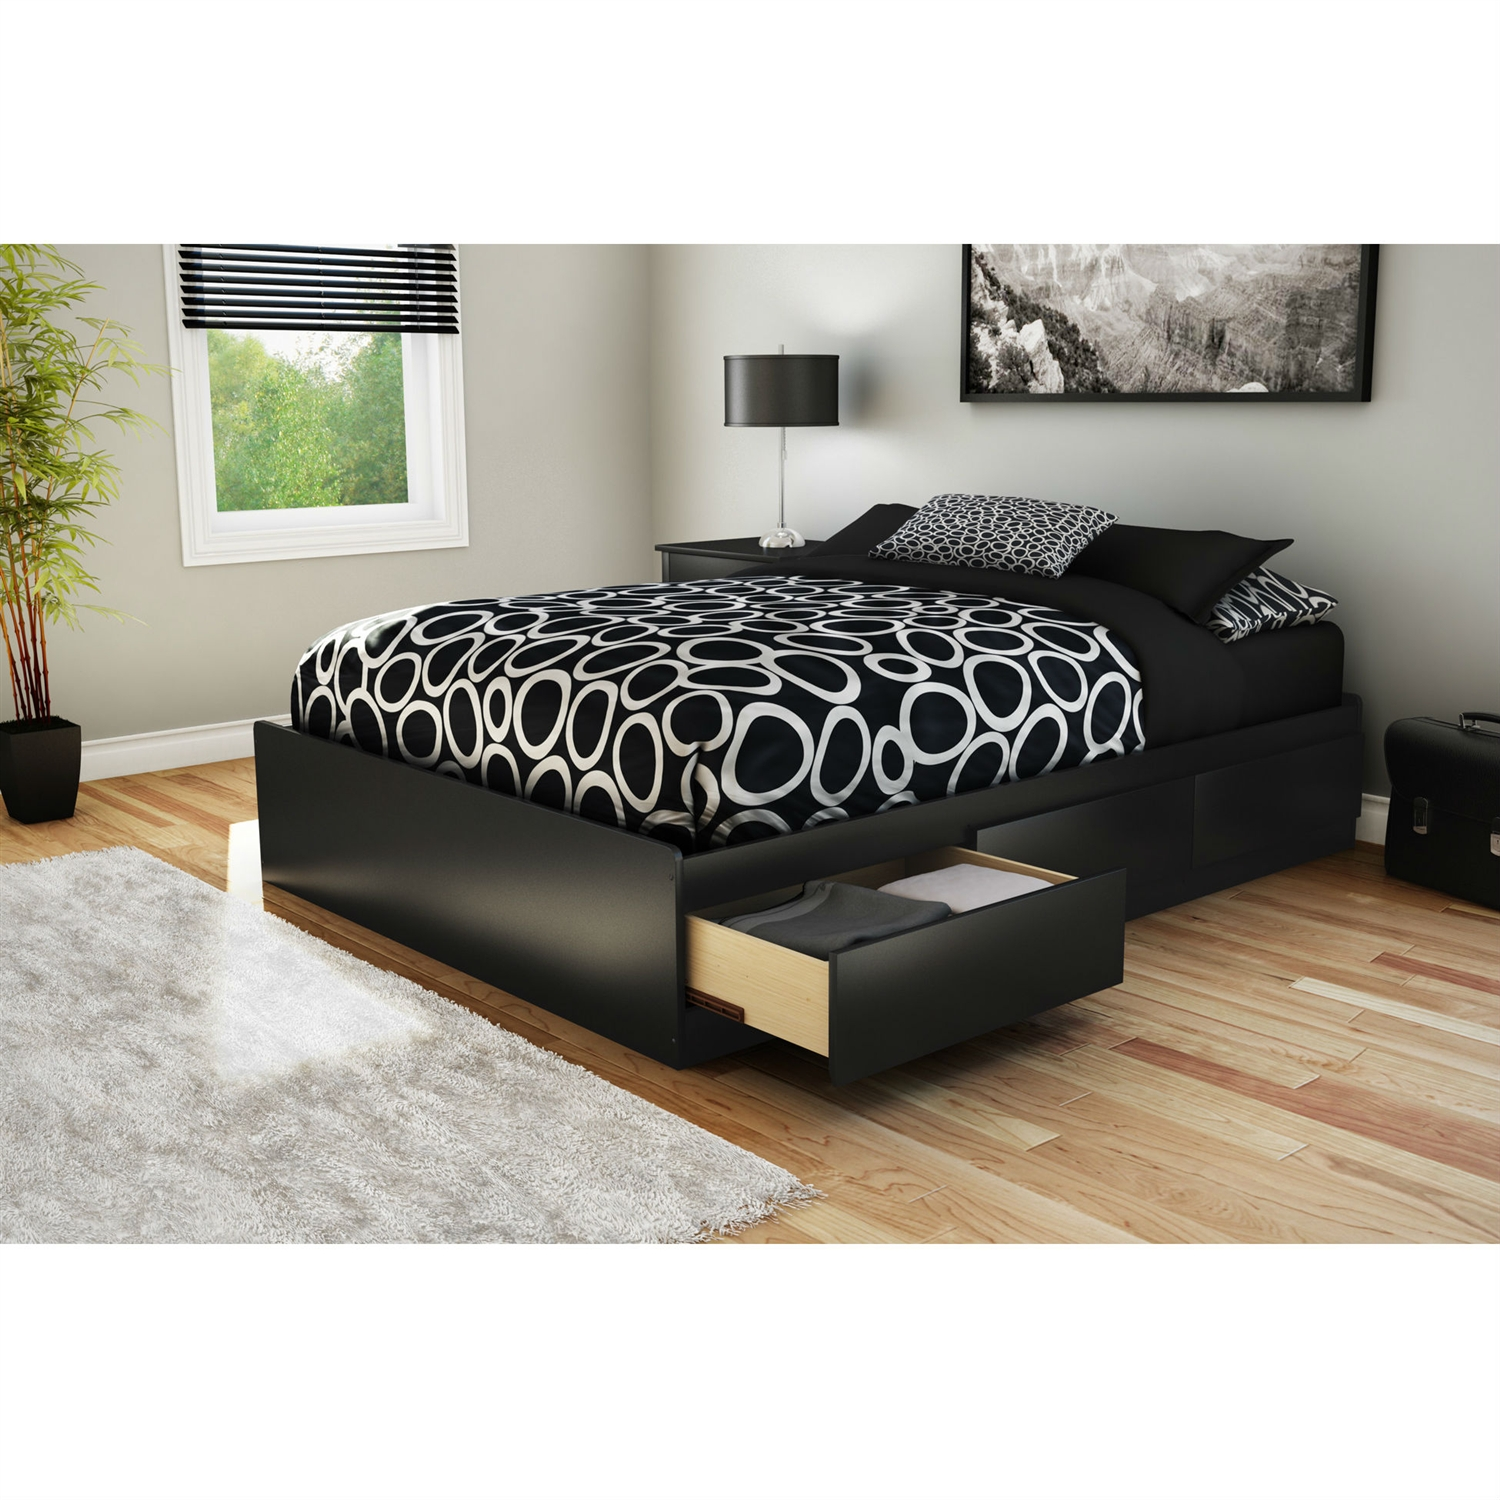 Full Size Modern Platform Bed With 3 Storage Drawers In Black Fastfurnishings Com